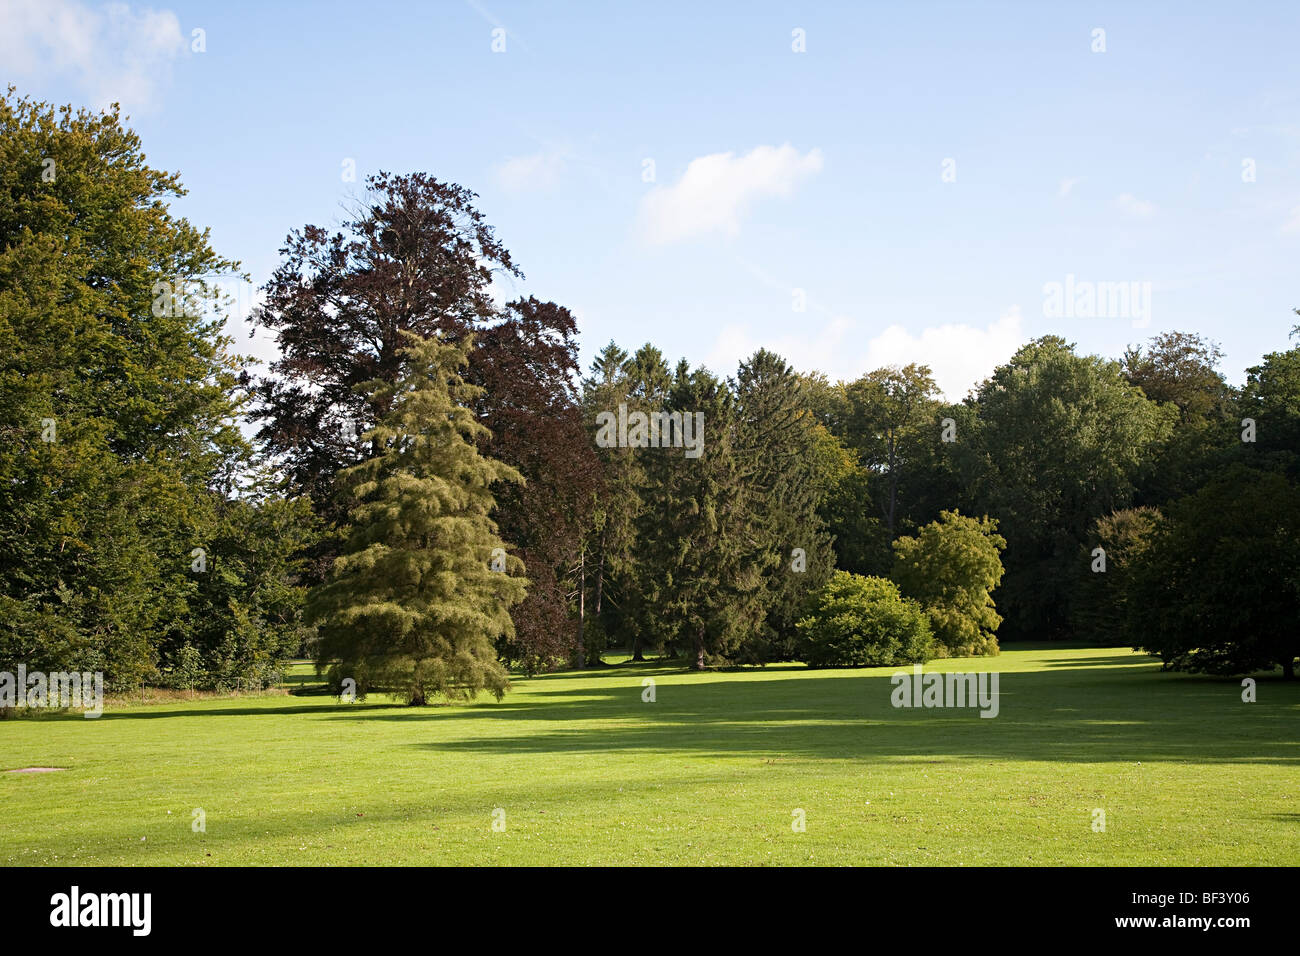 Trees in the grounds of the National Botanic Gardens Nationale Plantentuin Meise Brussels Belgium - Stock Image